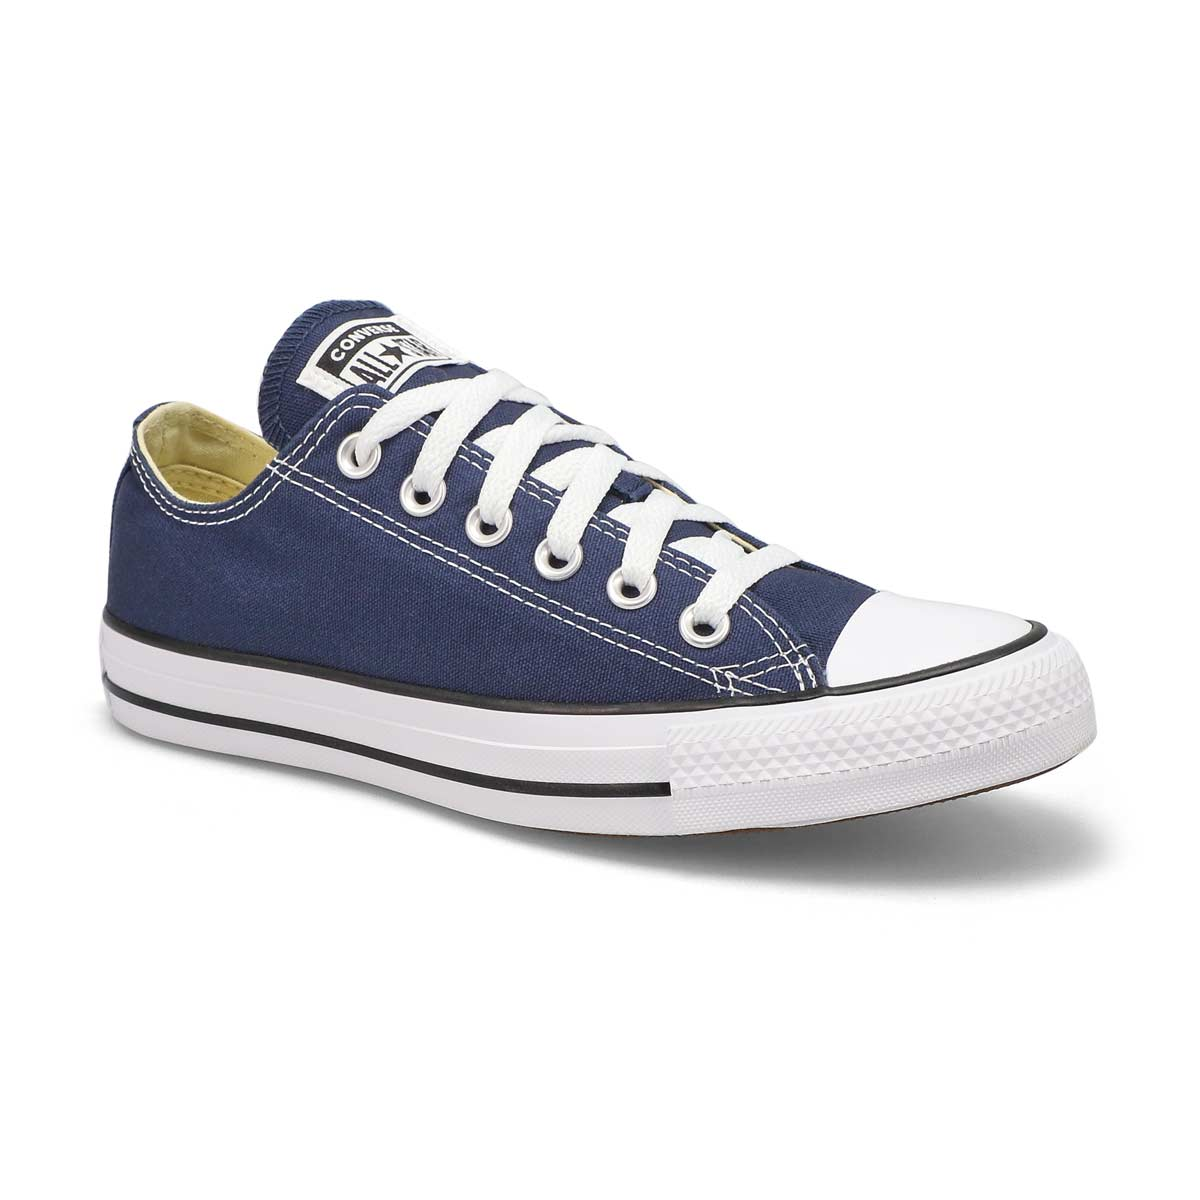 Women's CHUCK TAYLOR CORE OX  navy sneakers